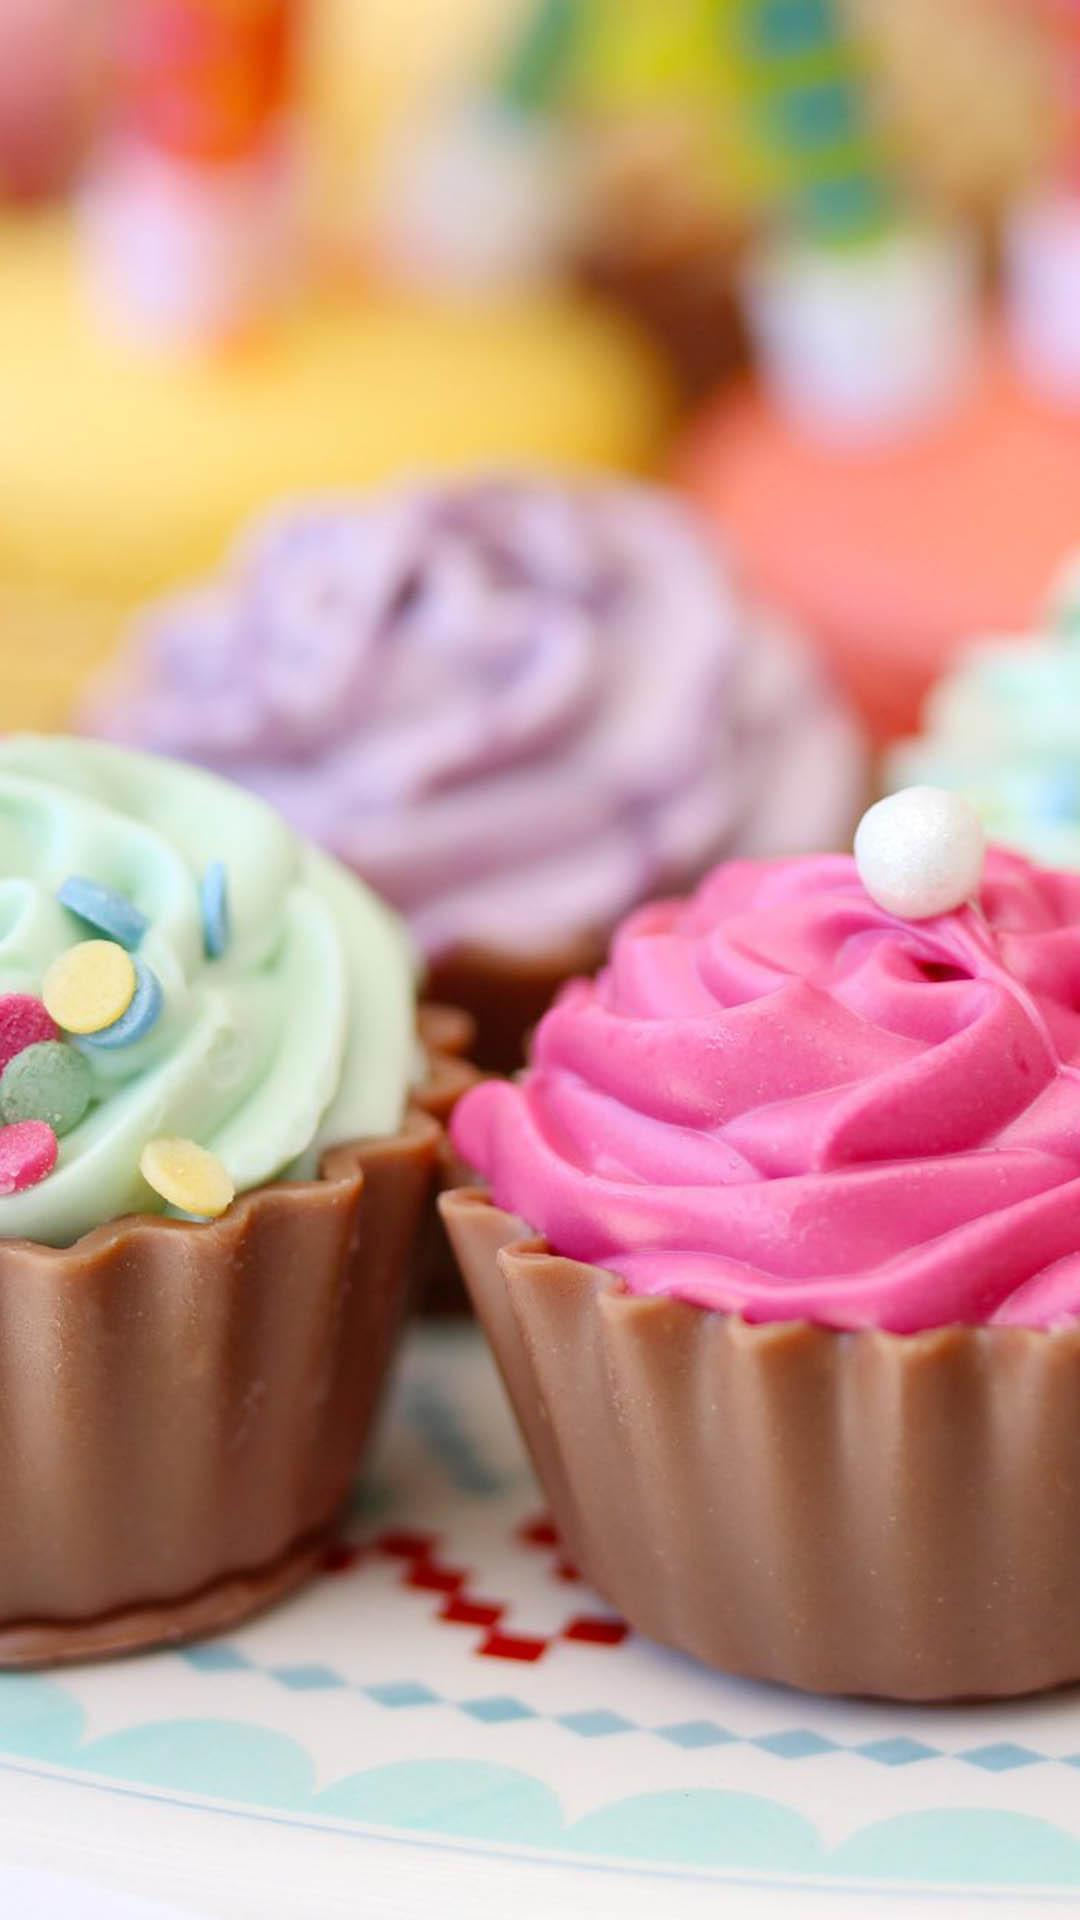 Cupcakes Wallpapers HD para Android - APK Descargar